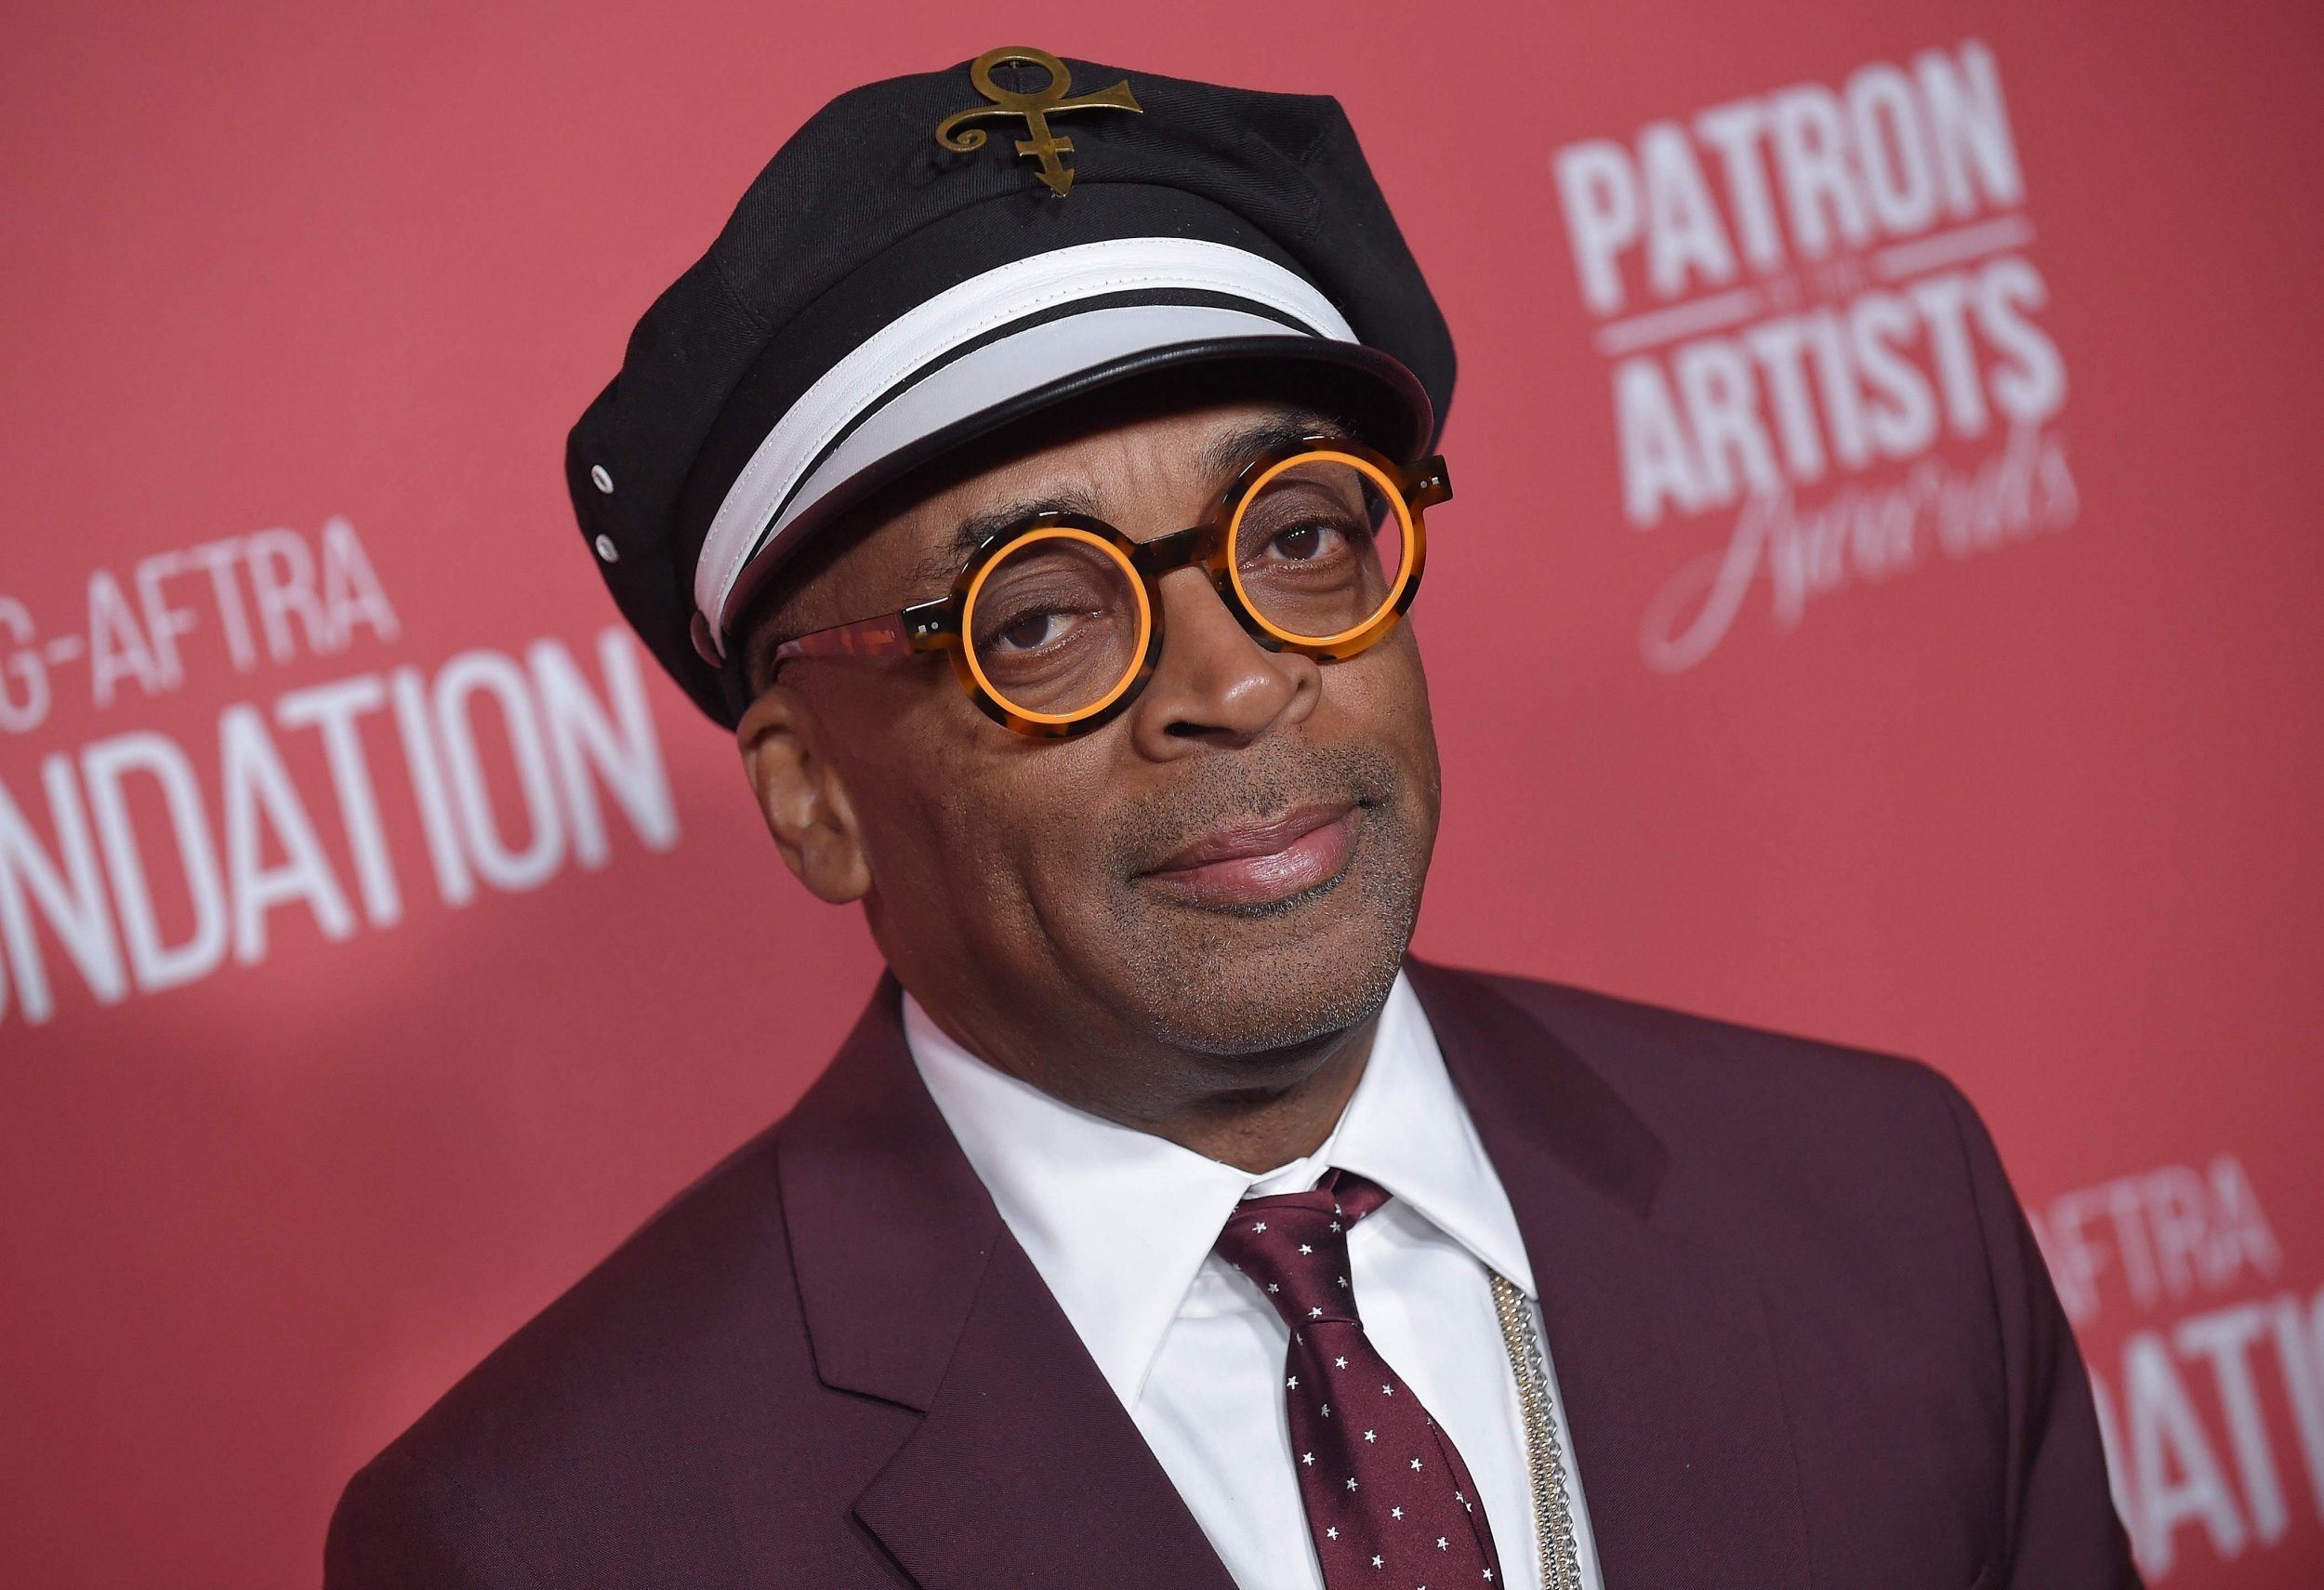 Spike Lee reflects on how police brutality is 'history repeating itself' as he discusses powerful short film